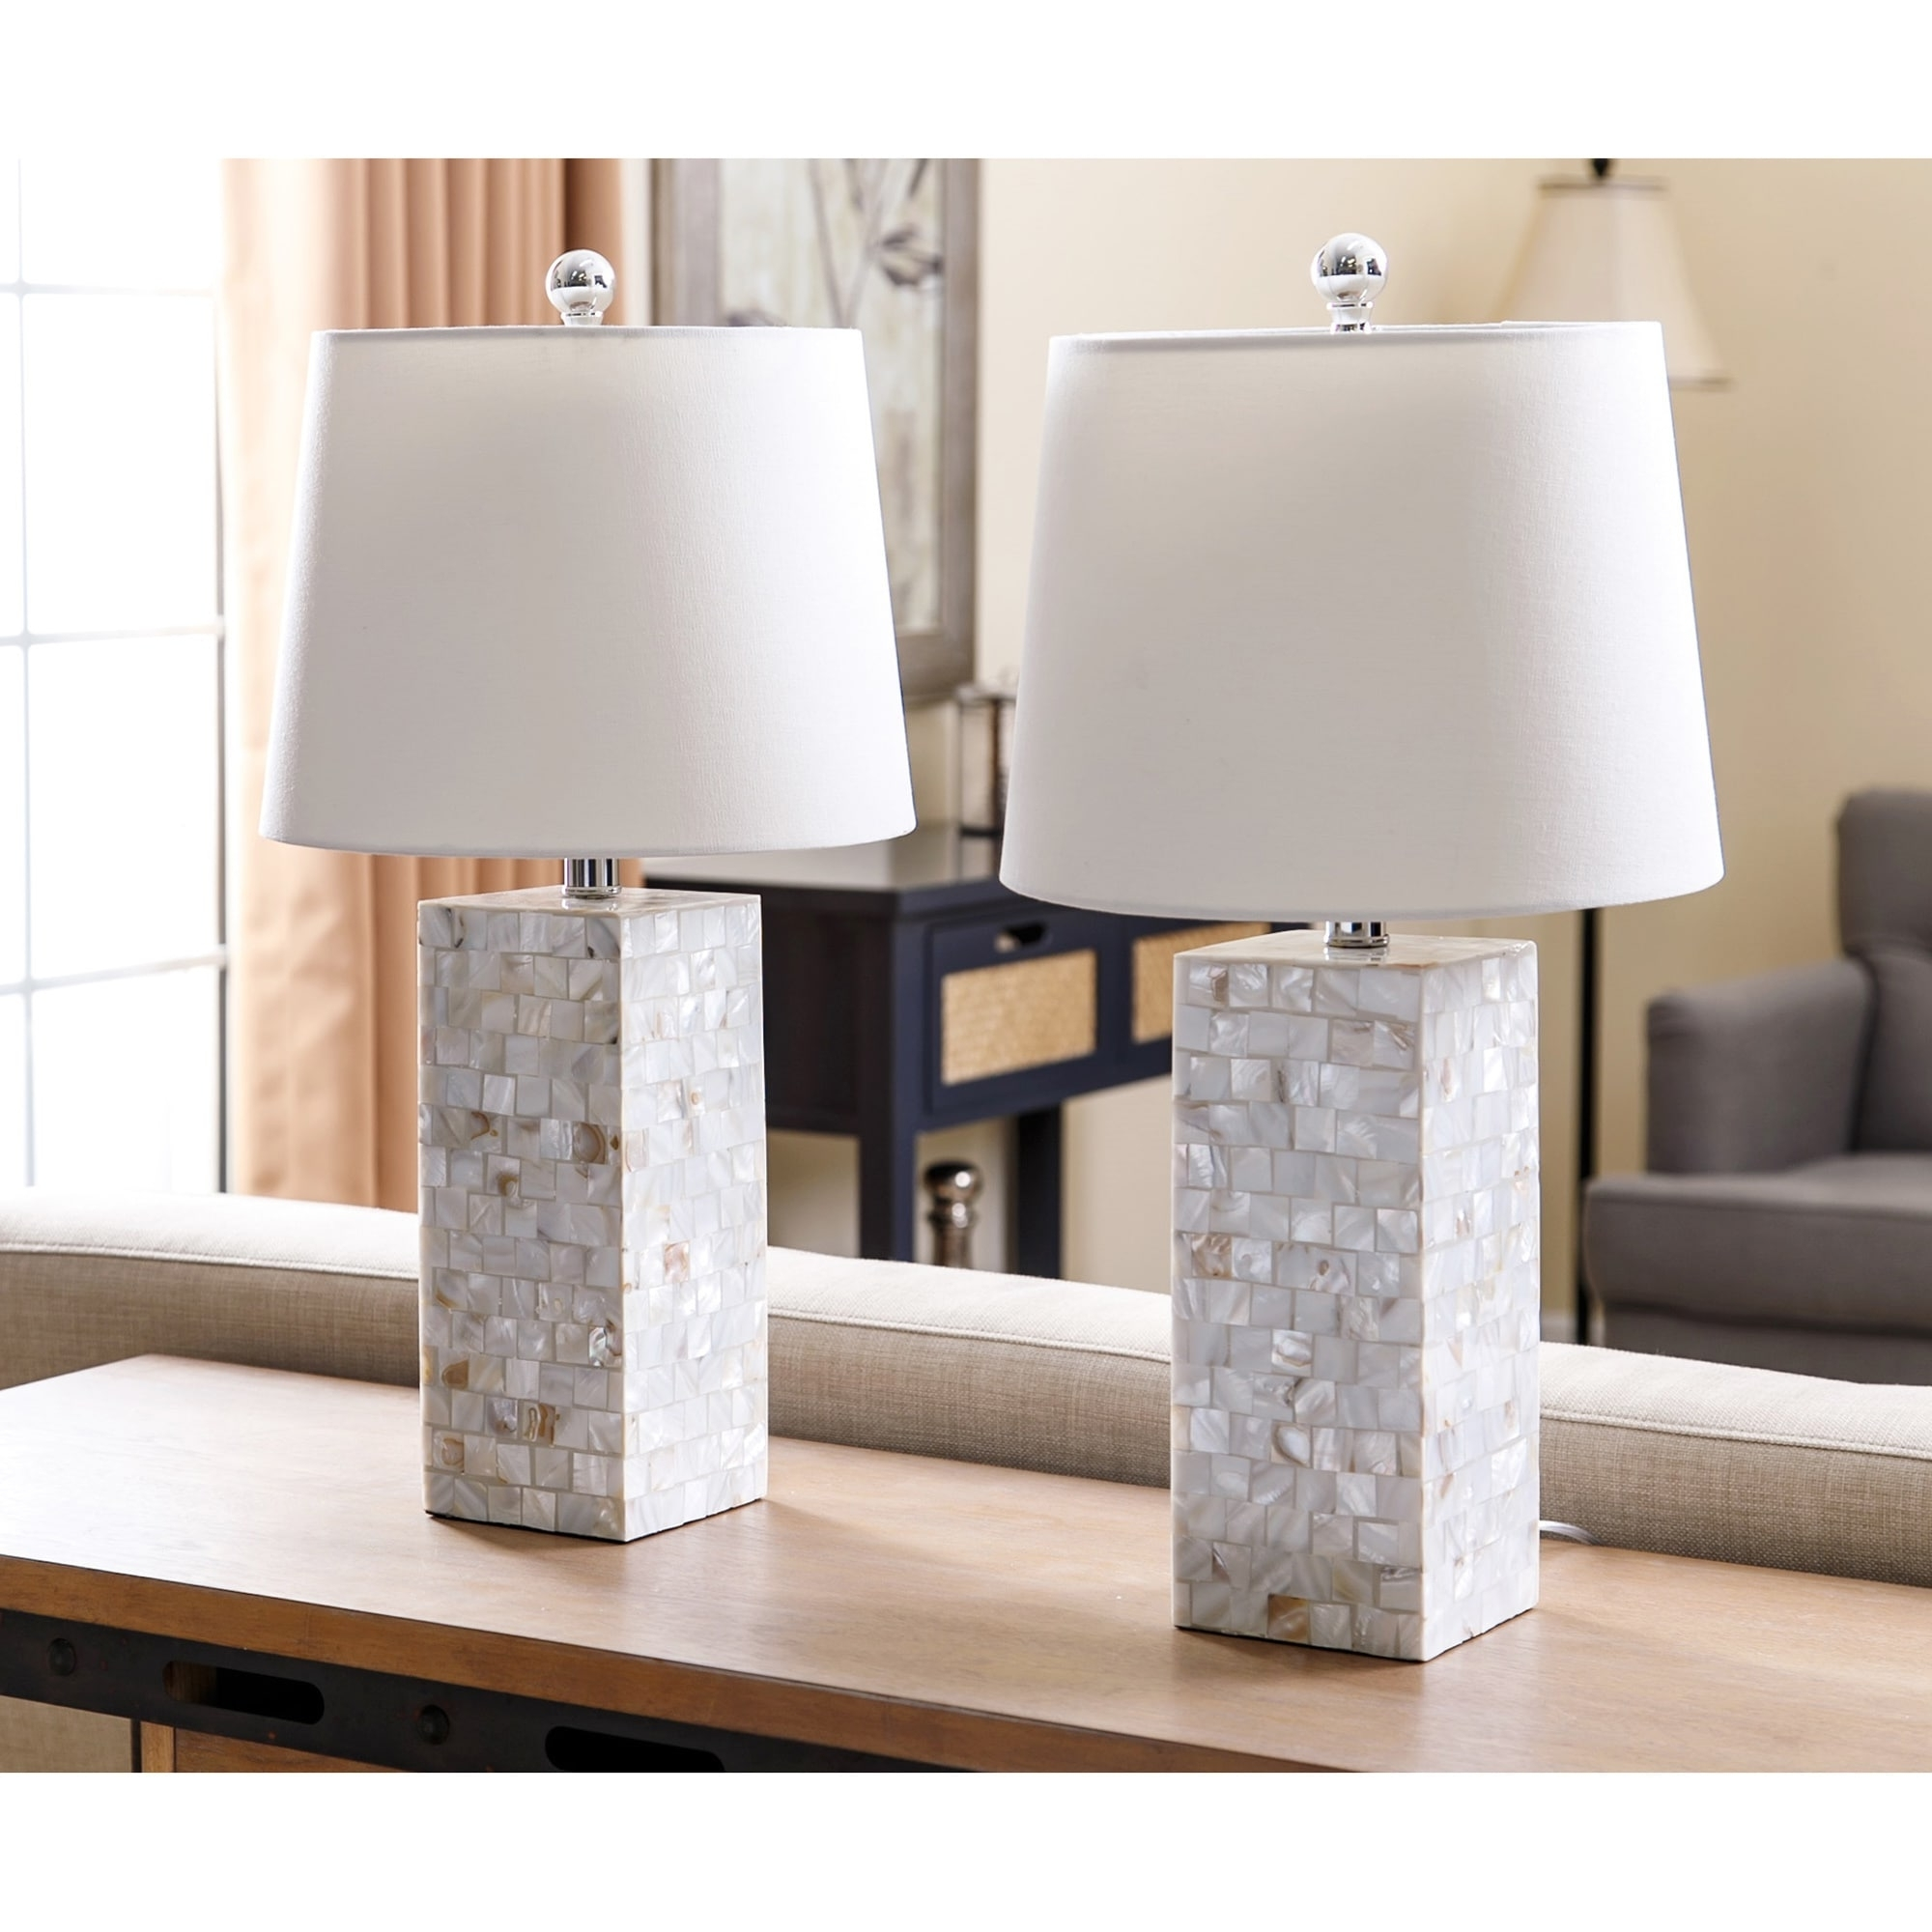 Most Popular Shop Abbyson Mother Of Pearl Square Table Lamp (Set Of 2) – On Sale Regarding Set Of 2 Living Room Table Lamps (View 5 of 20)